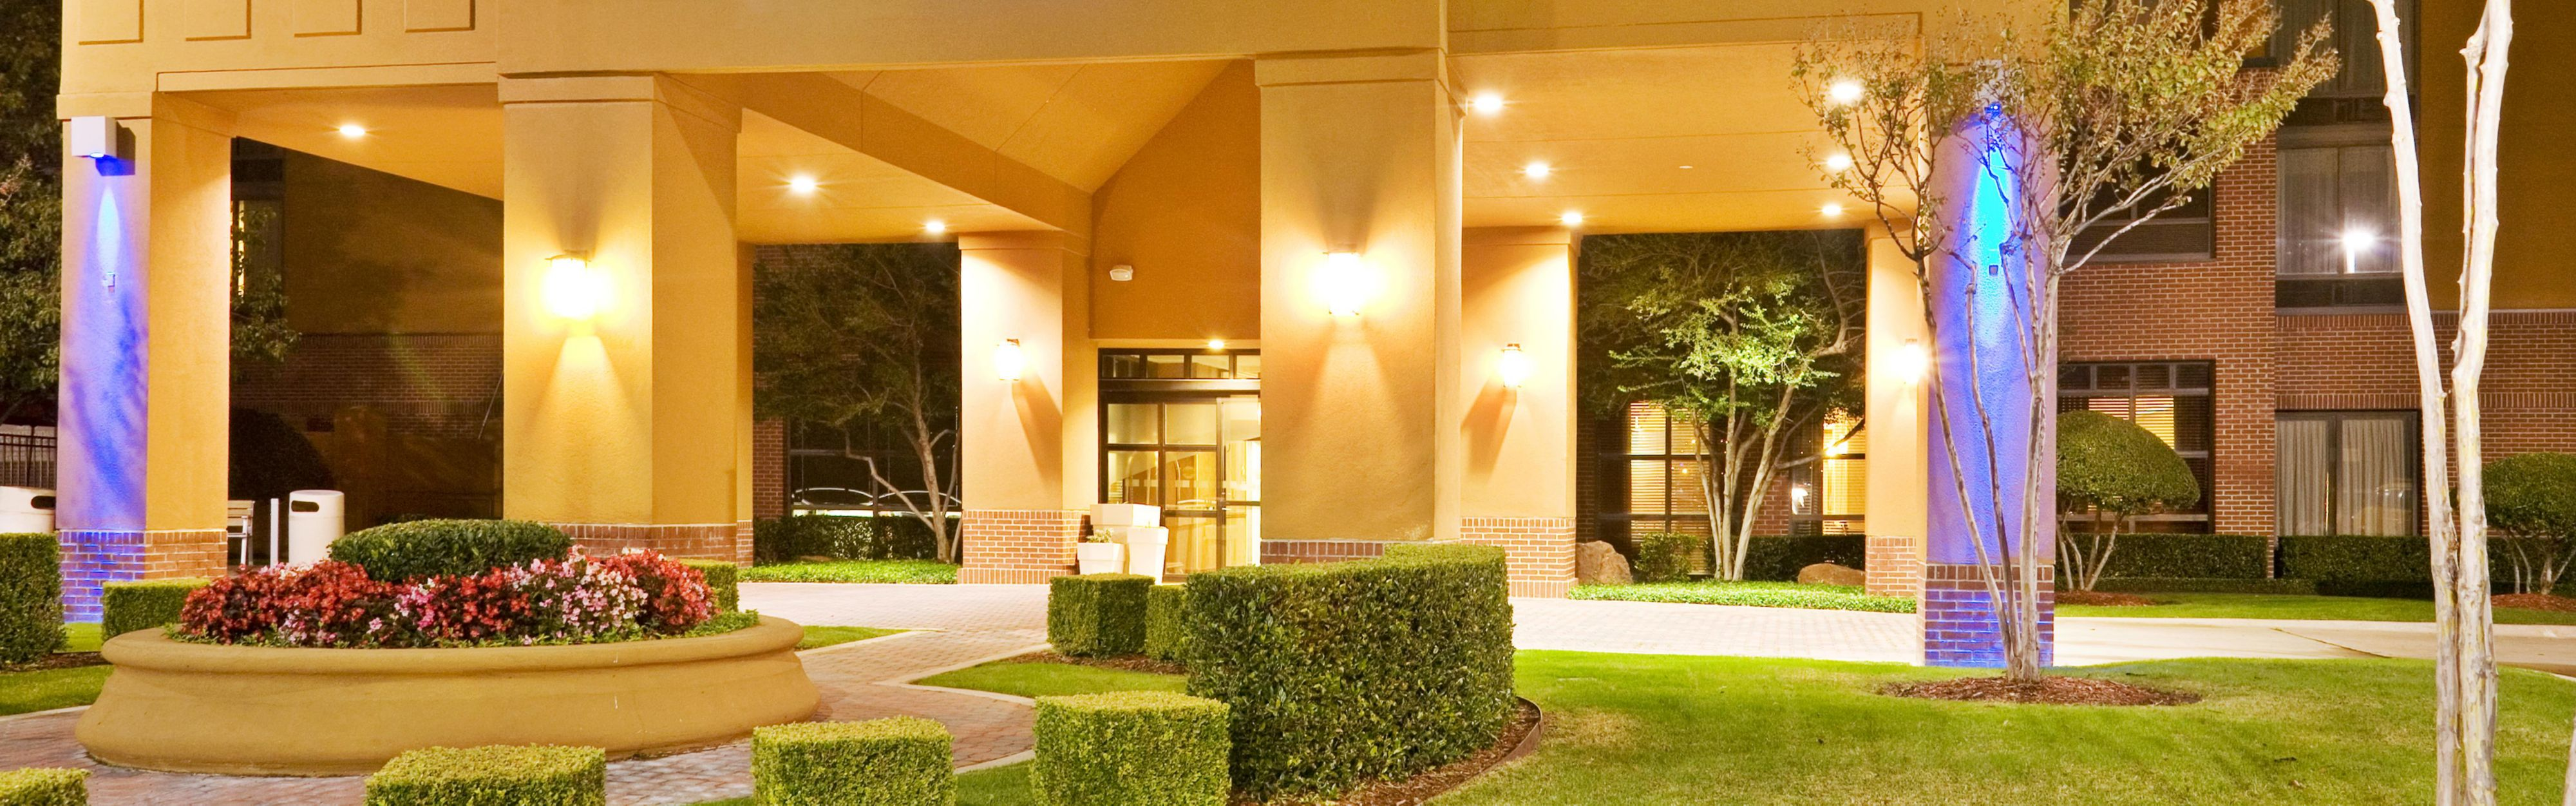 Holiday Inn Express & Suites Irving Conv Ctr - Las Colinas image 0